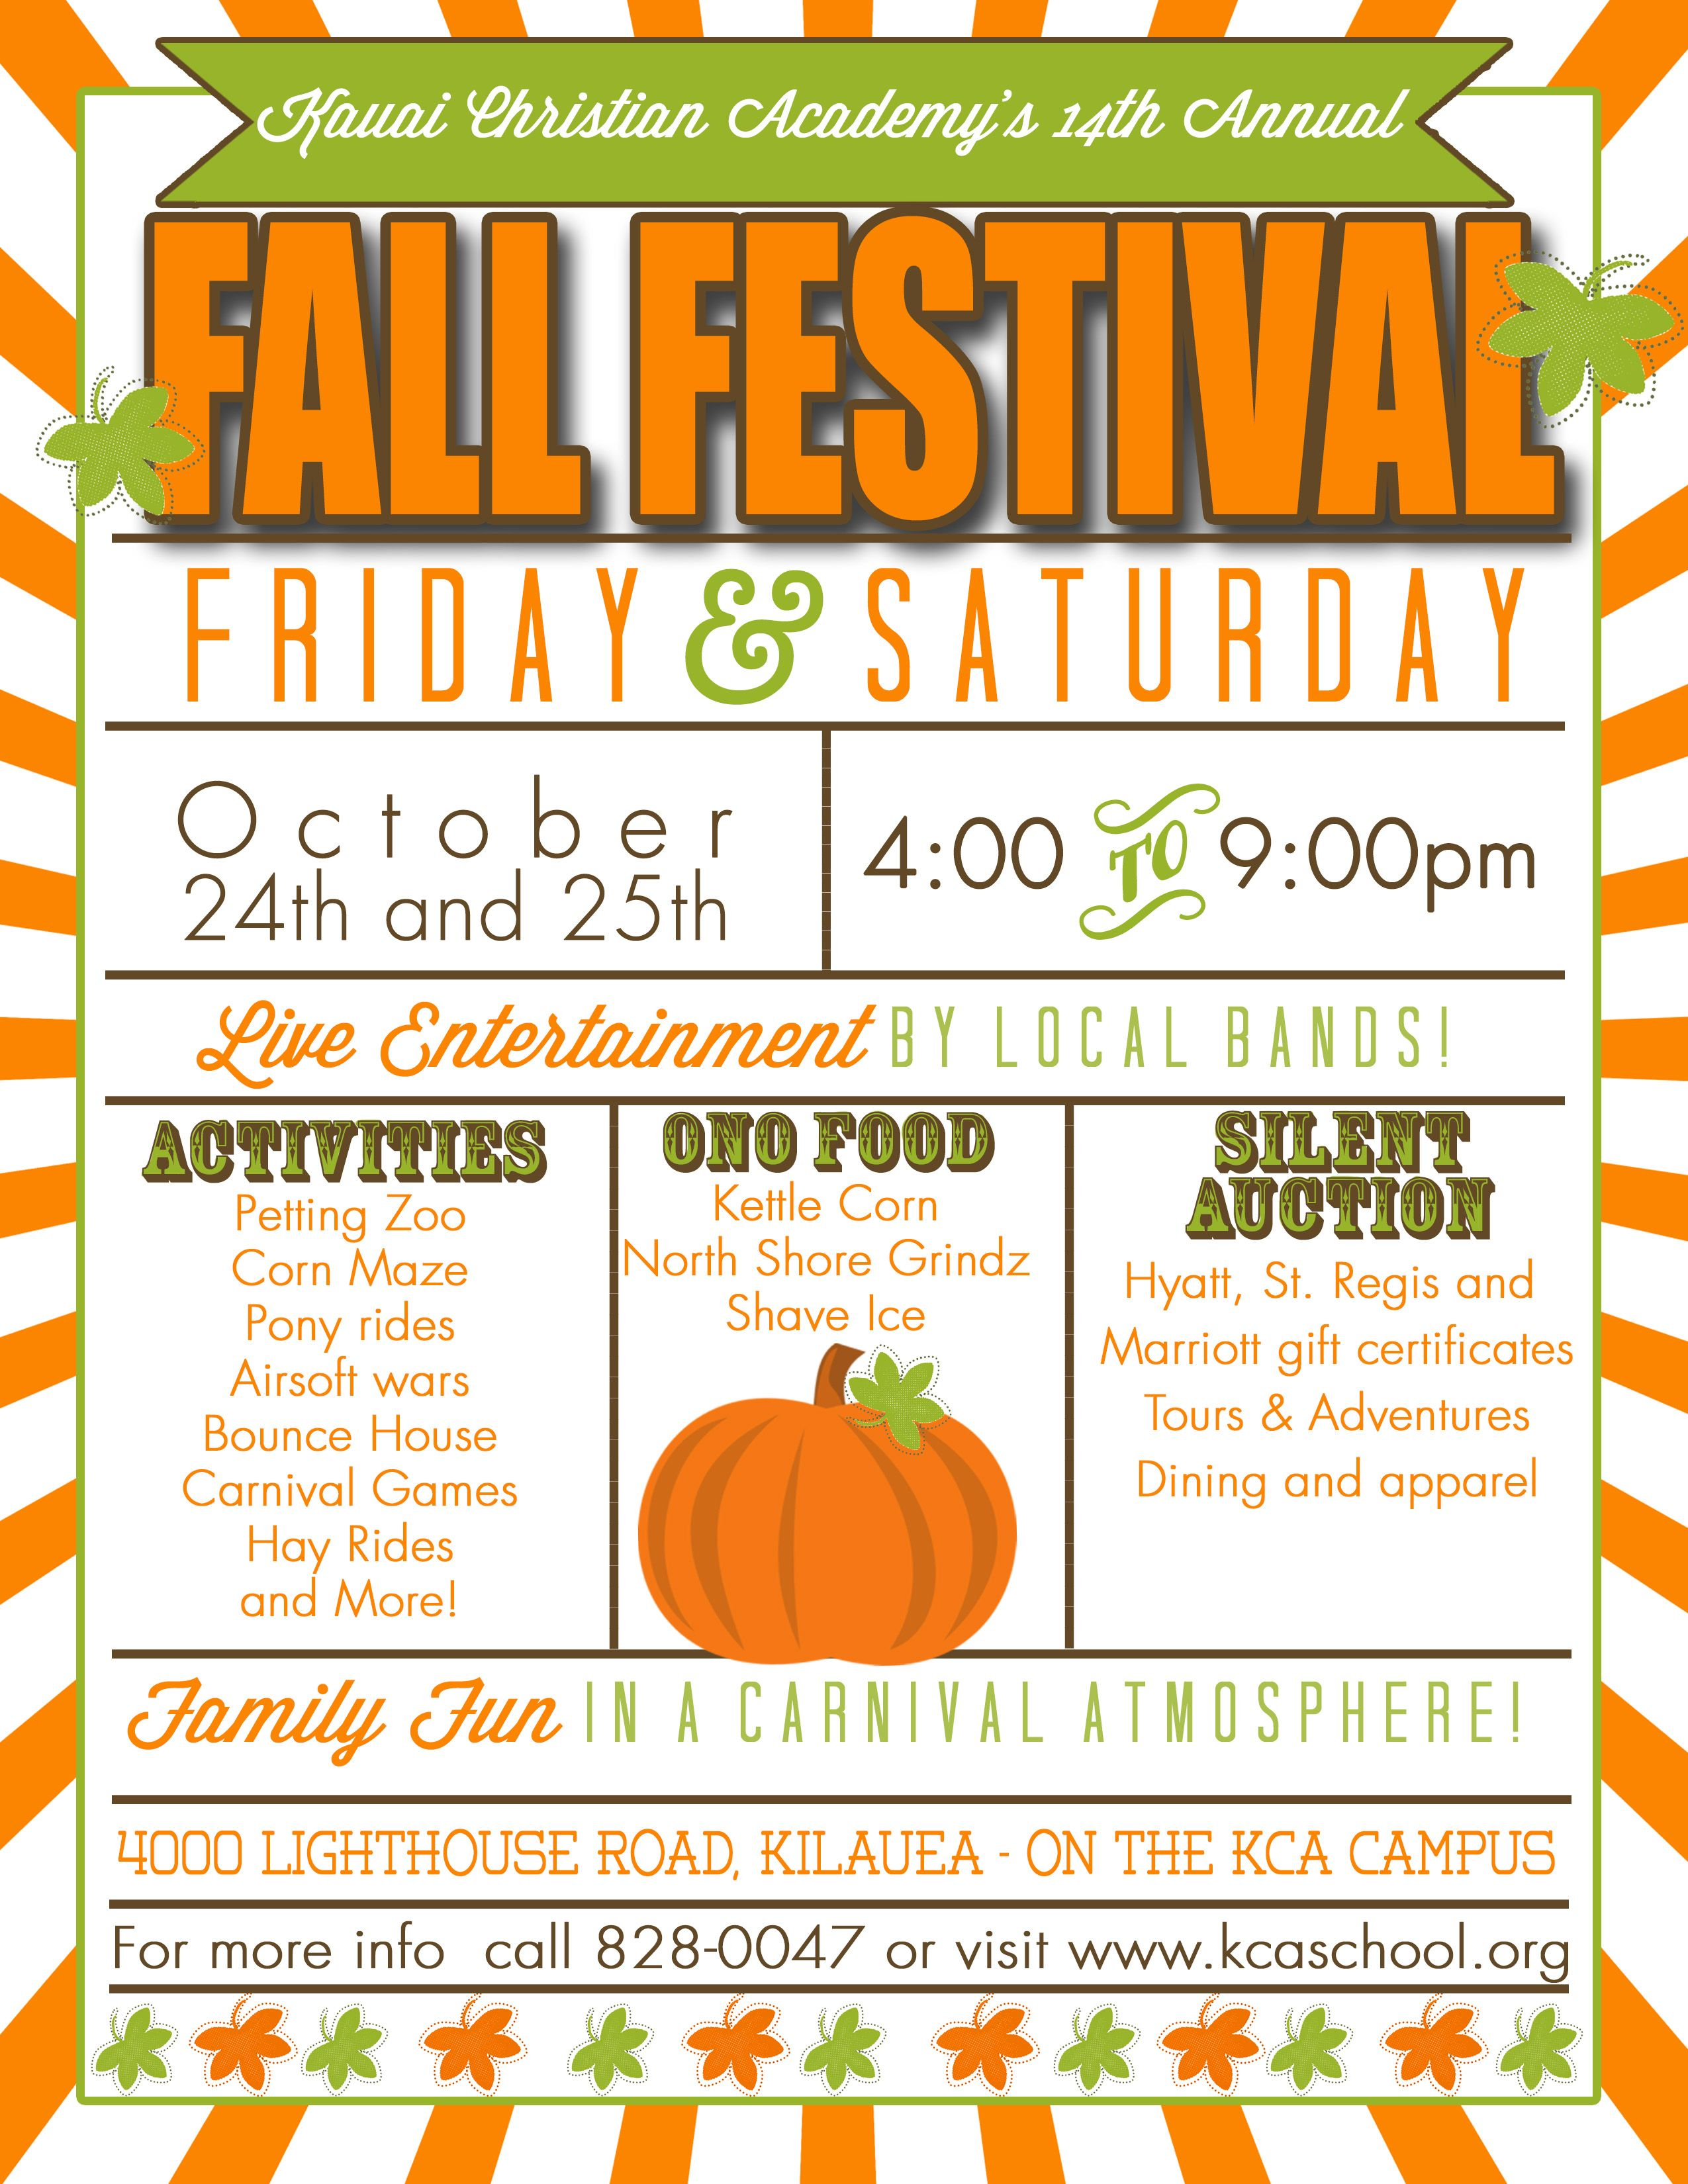 17 Best images about Flyer on Pinterest | Fall fest, Block party ...